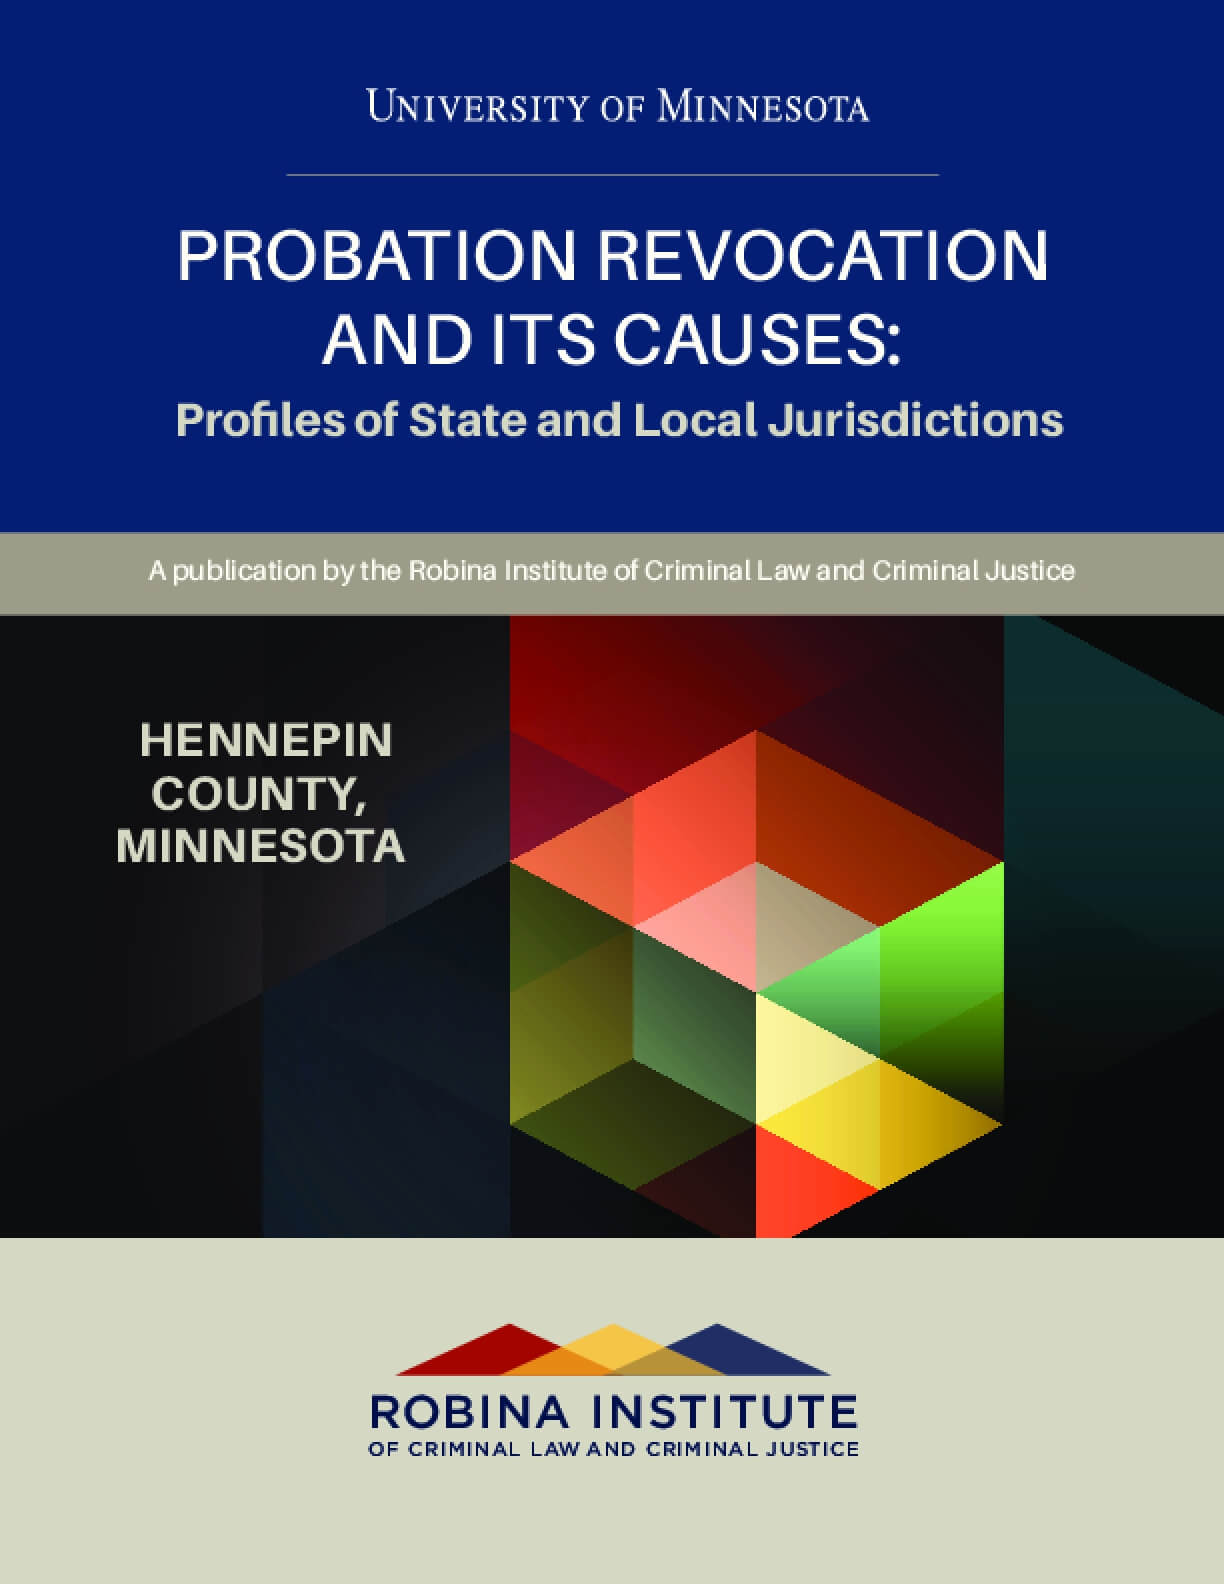 Probation Revocation and Its Causes: Profiles of State and Local Jurisdictions, Hennepin County, Minnesota